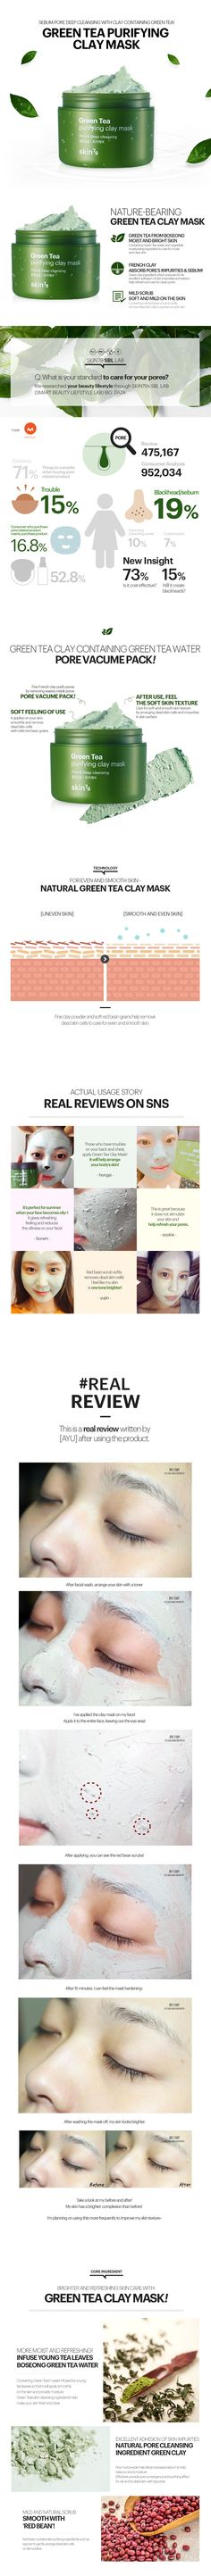 Skin 79 Green Tea Purifying Clay Mask contains mud to absorb sebum. Green tea is used to improve the dryness of the clay and feel moist after use. Softly care for dead skin cells with natural scrub ingredient of Red Bean grains.